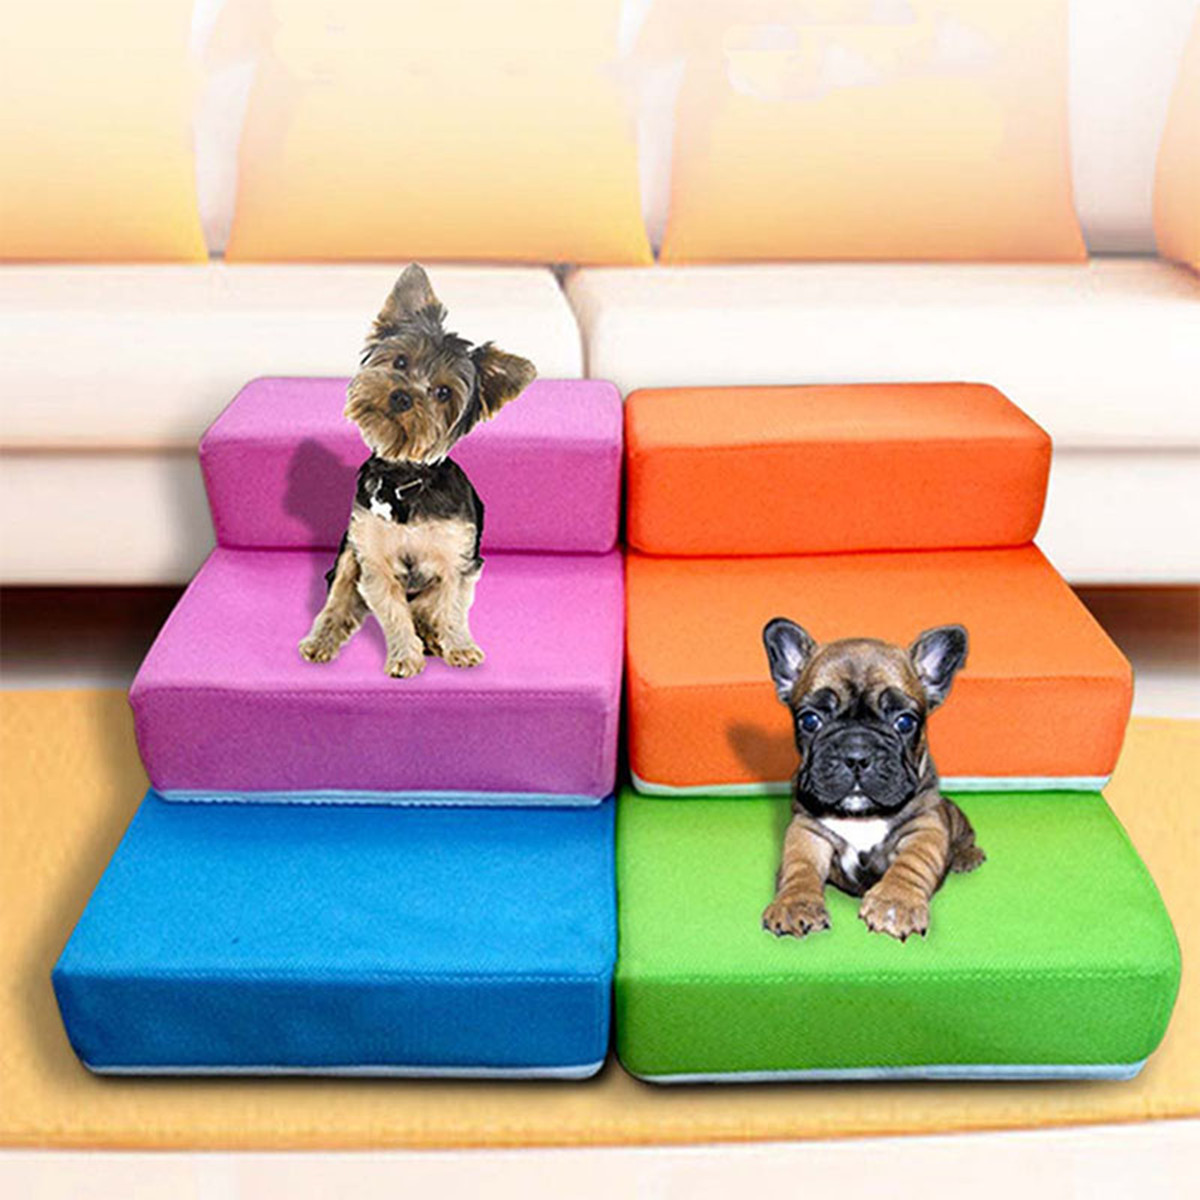 Moaere 3Tier Step Foldable Pet Stairs Cozy Dog Ladder Cat Ramp Removable Washable Carpet Treadfor Cats/Dogs Deal of the day